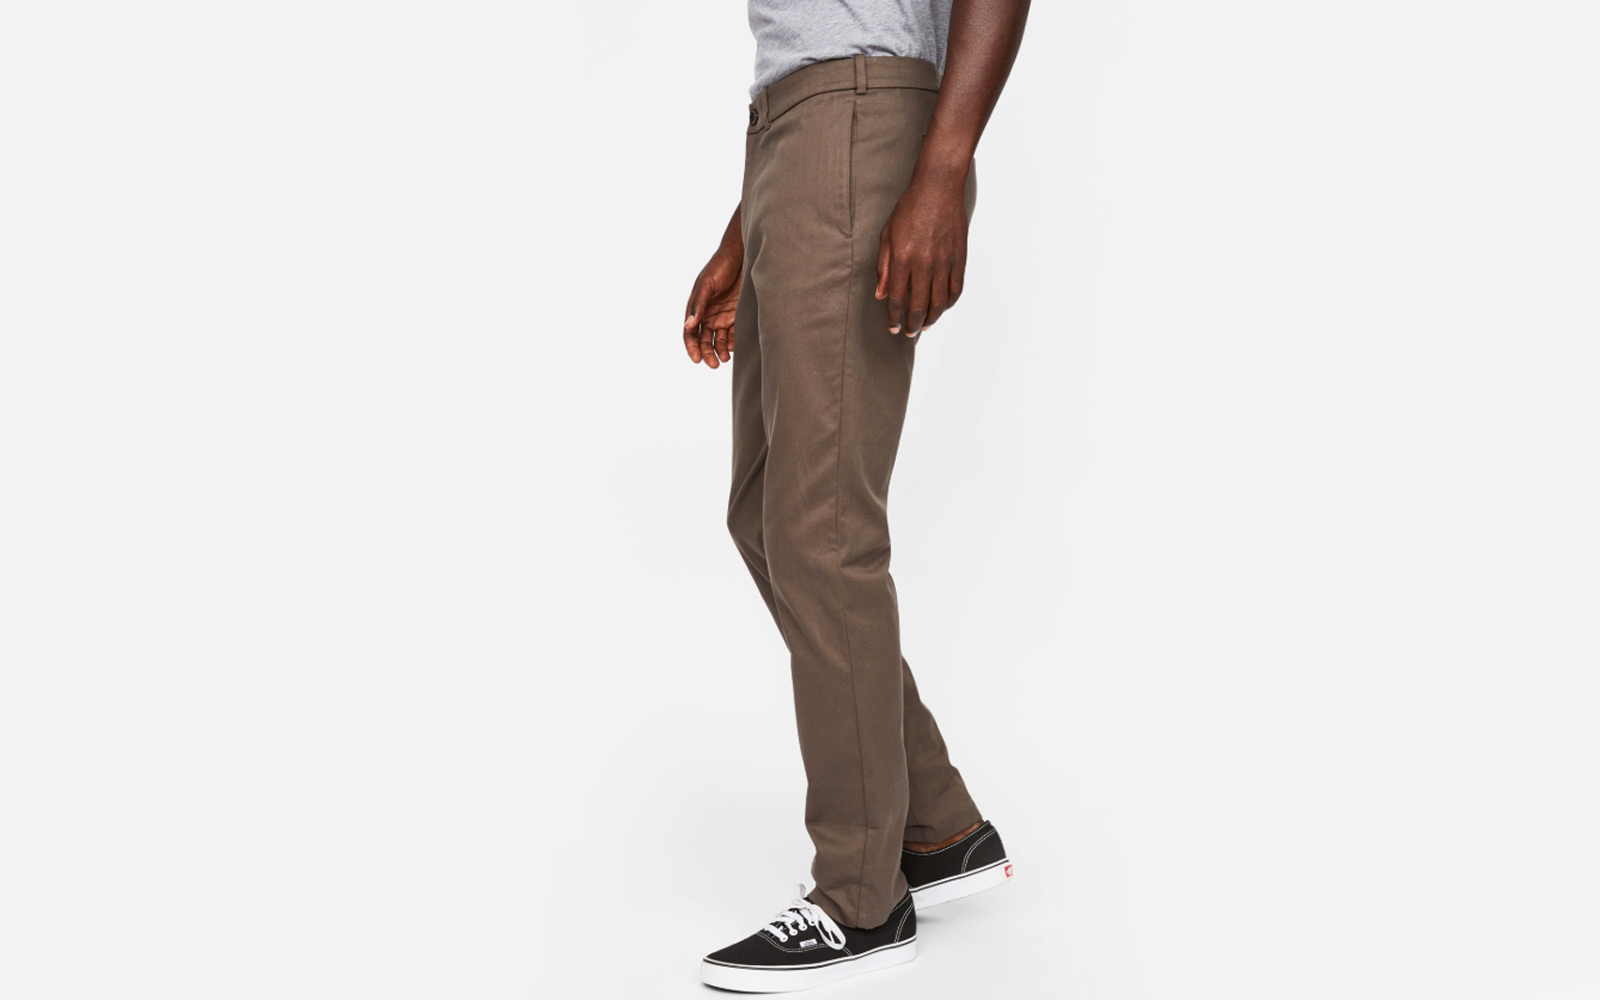 f41ebb7d The Best Men's Travel Pants for Every Type of Trip | Travel + Leisure